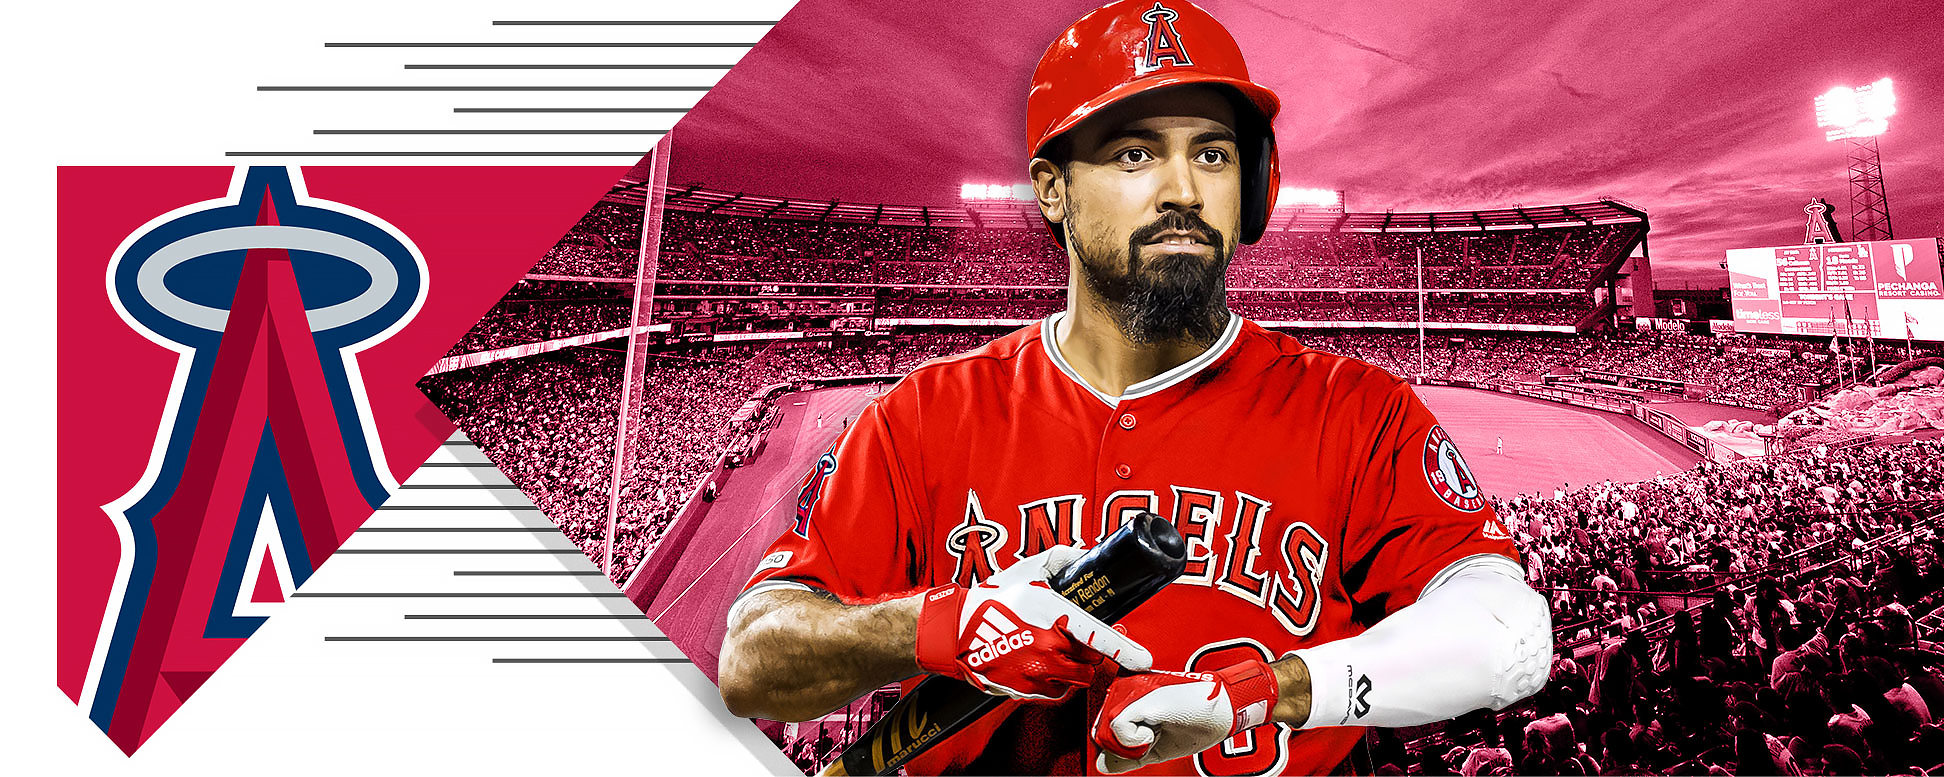 Angels' quest to win now begins with Anthony Rendon